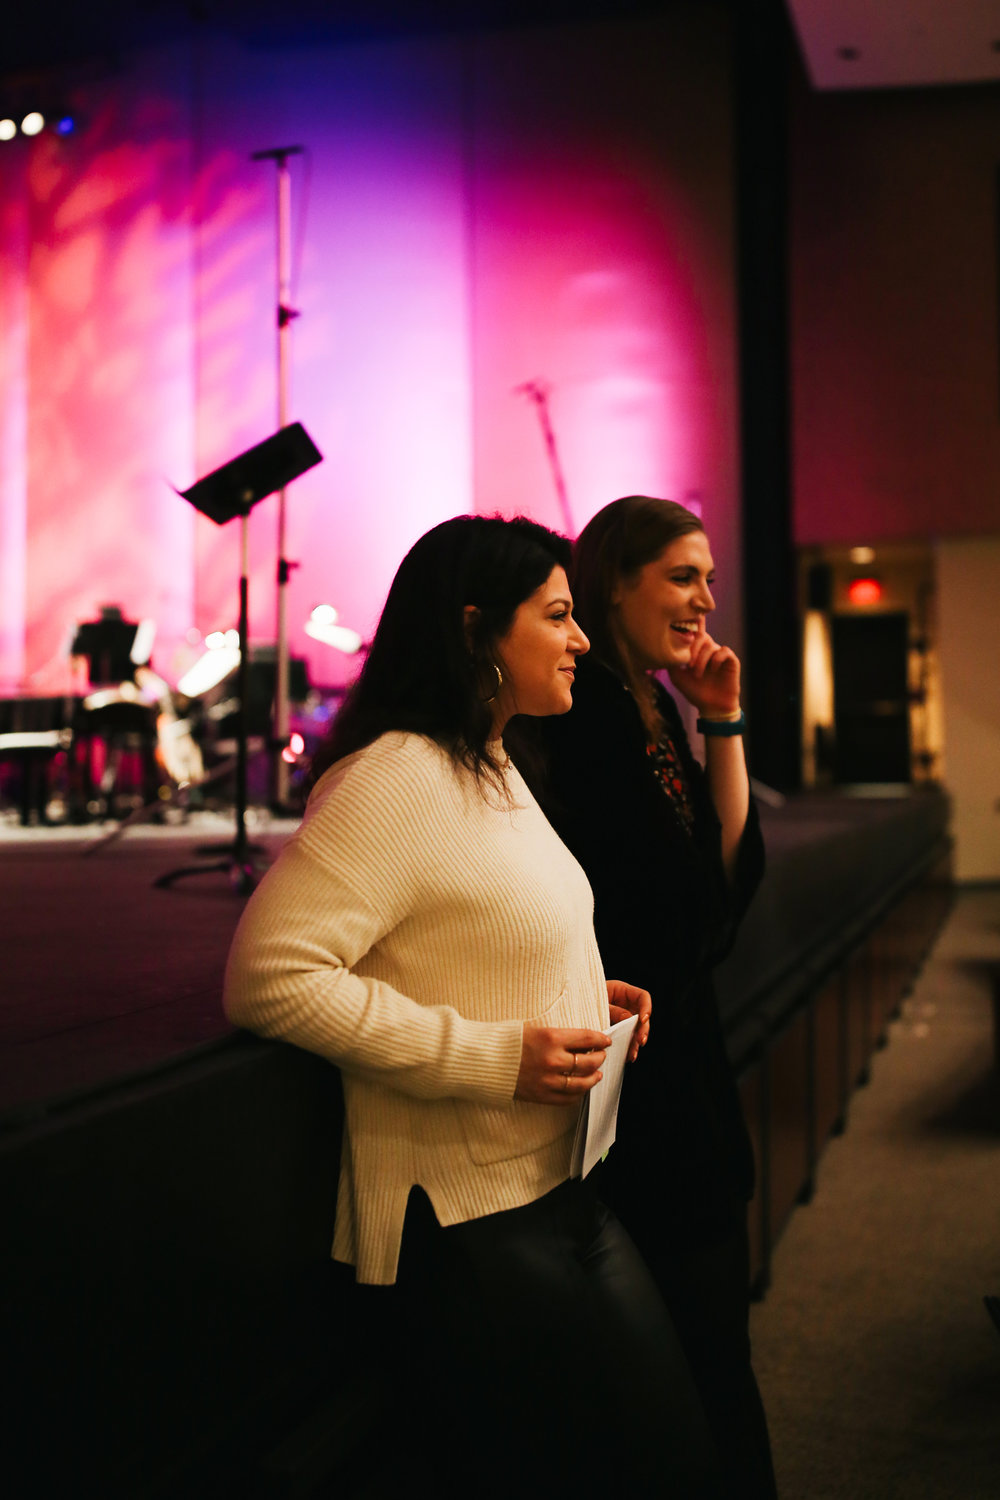 """PRACTICE MAKES PERFECT.  Rabbi Mark Schiftan's daughter, SarahRose Schiftan, rehearses with the lighting engineer for the her recitation of poem """"Take Me Under Your Wing"""" as part of the HGM premiere."""